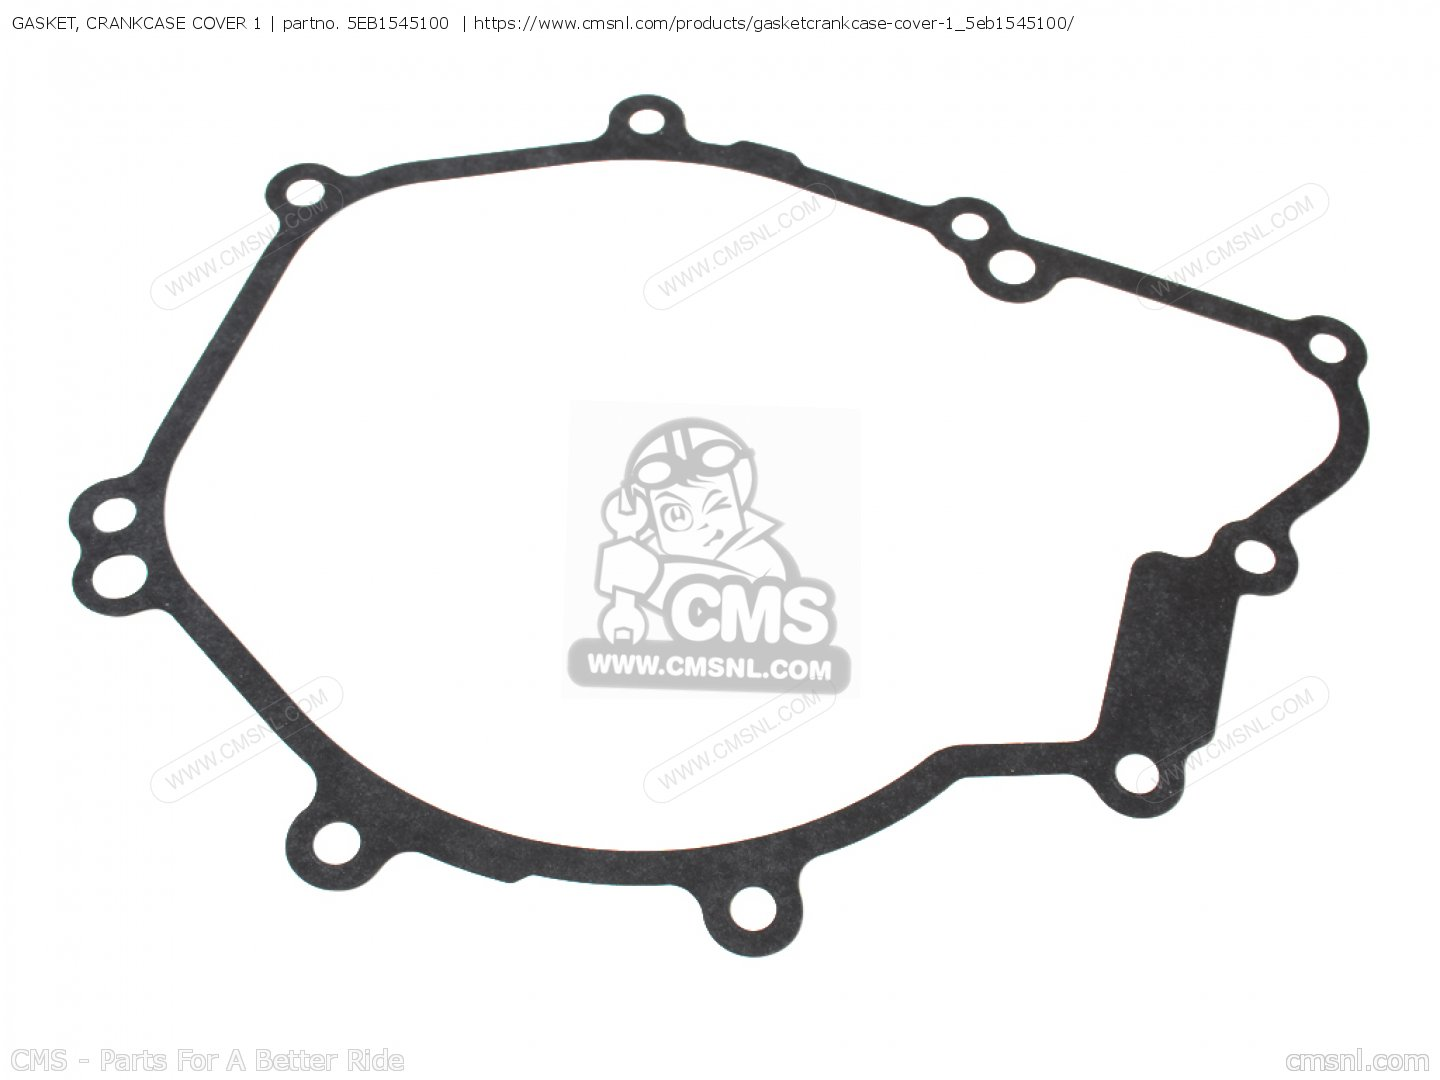 GASKET, CRANKCASE COVER 1 for YZF-R6 2002 5MTB HOLLAND